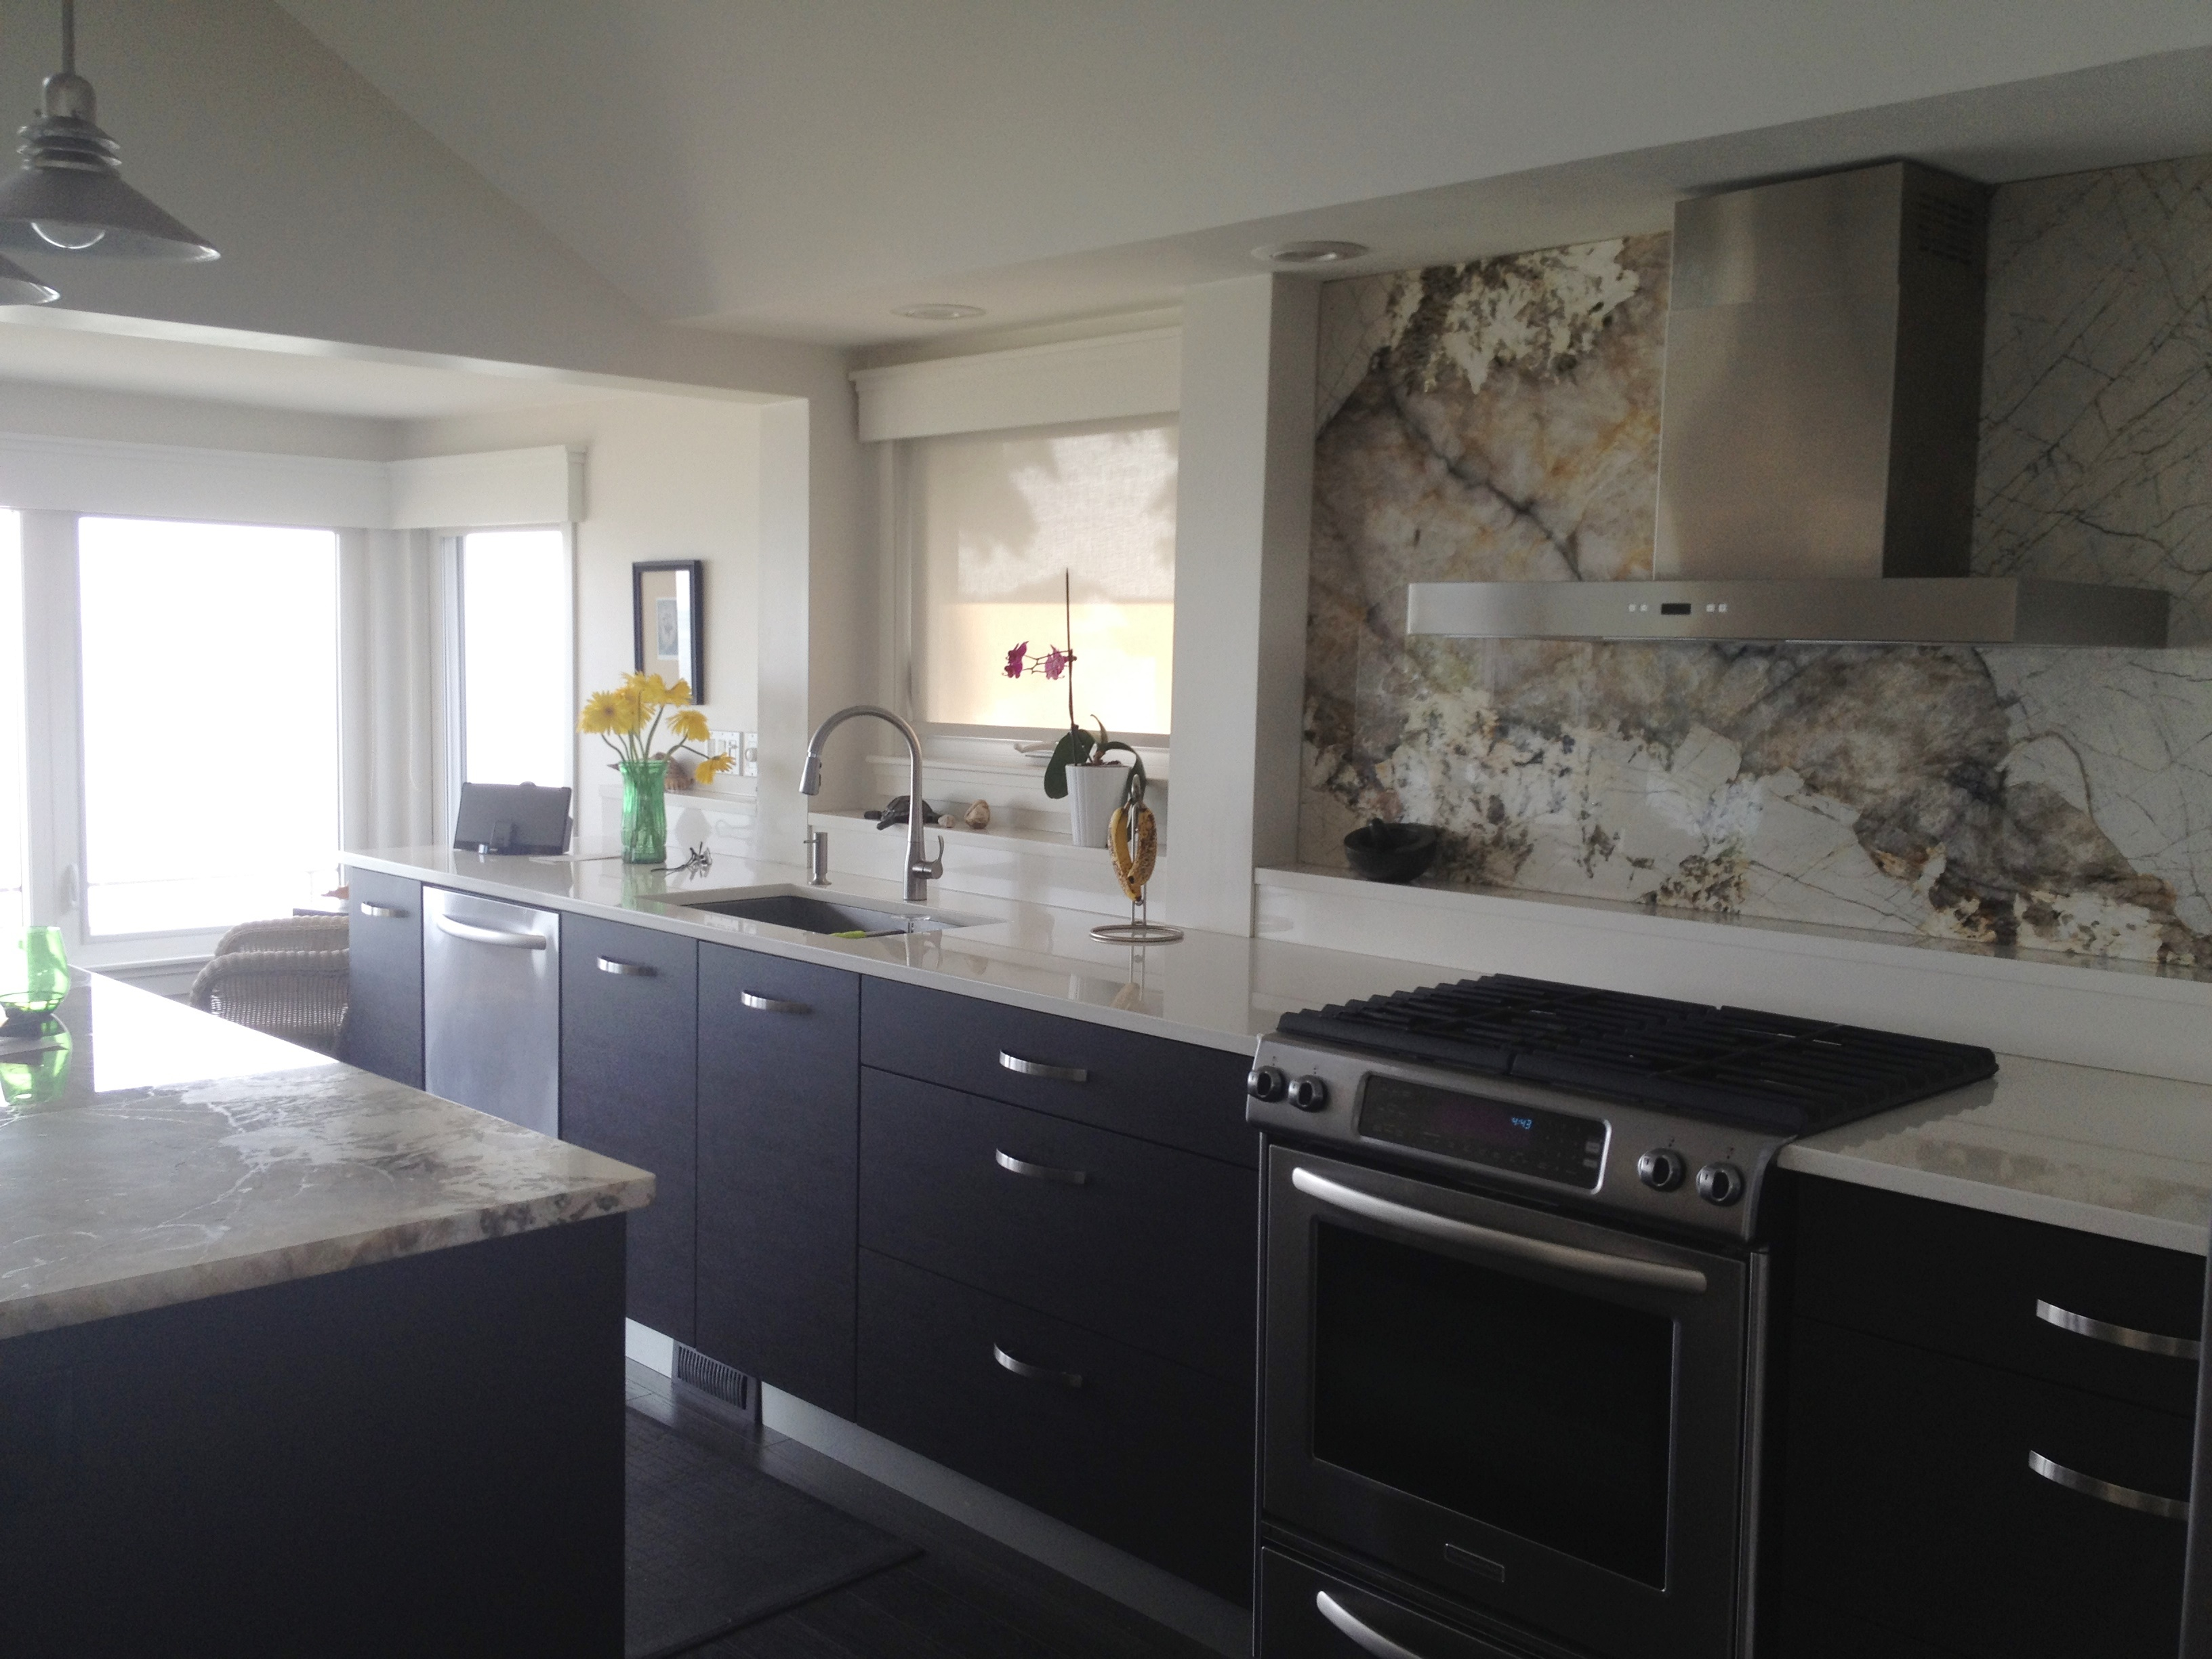 Products | Silver Creek Custom Cabinetry - Part 2